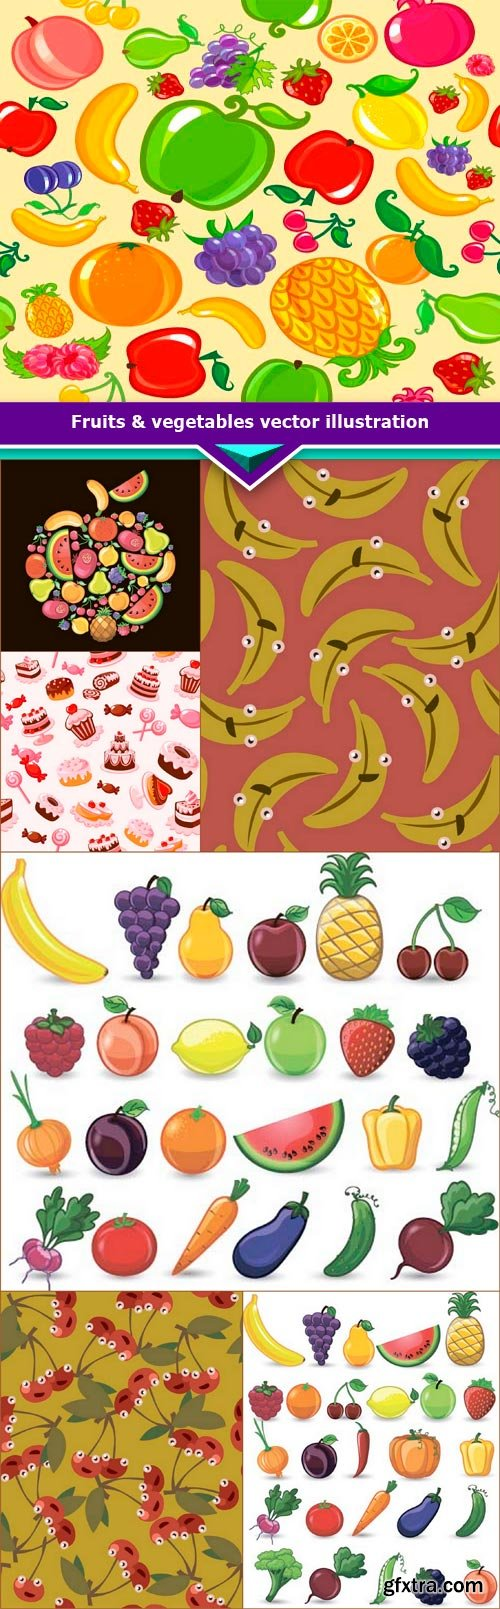 Fruits & vegetables vector illustration 7x JPEG